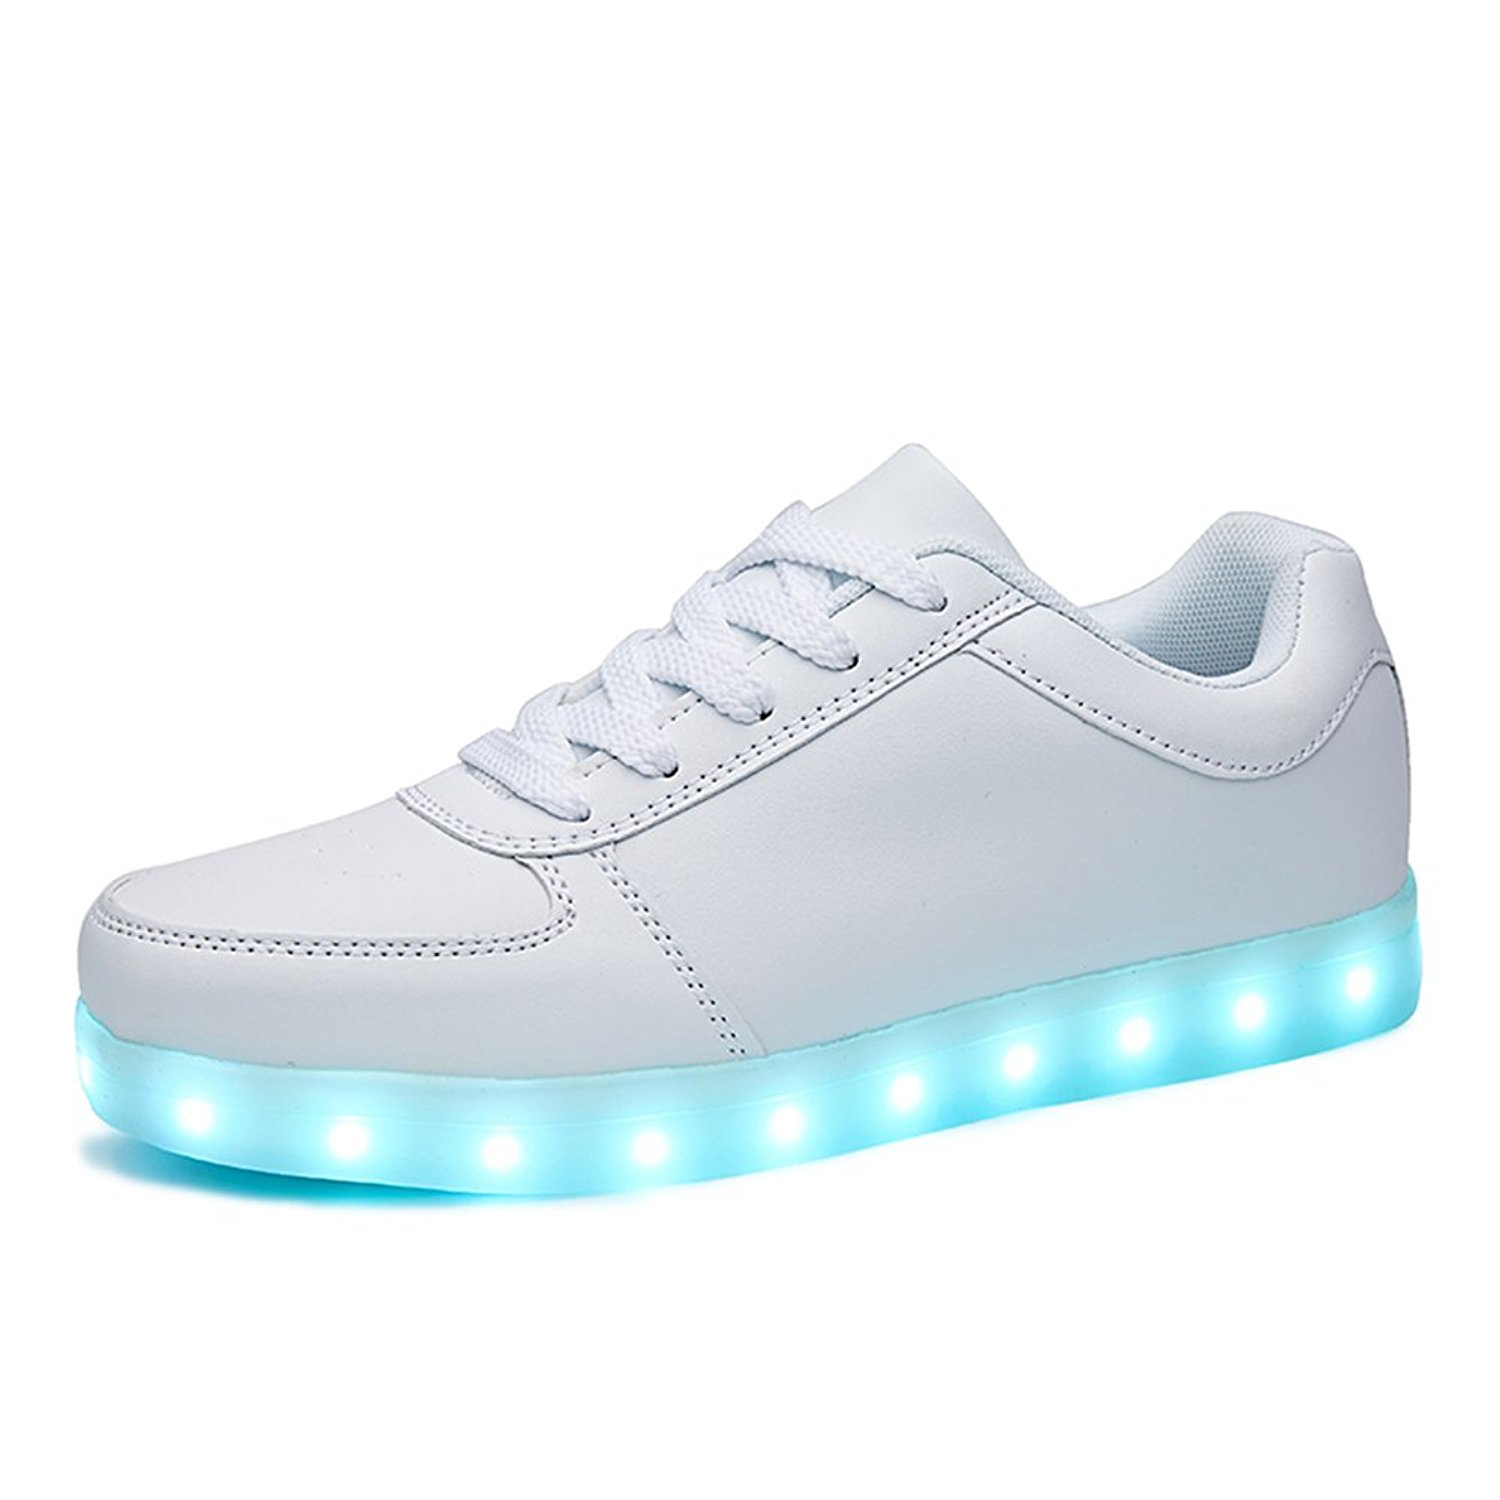 4f990f49f043 KRIATIV Kids Boy and Girl s High Top LED Sneakers Light Up Flashing Shoes  Luminous Sneakers Women Men Glowing Sole